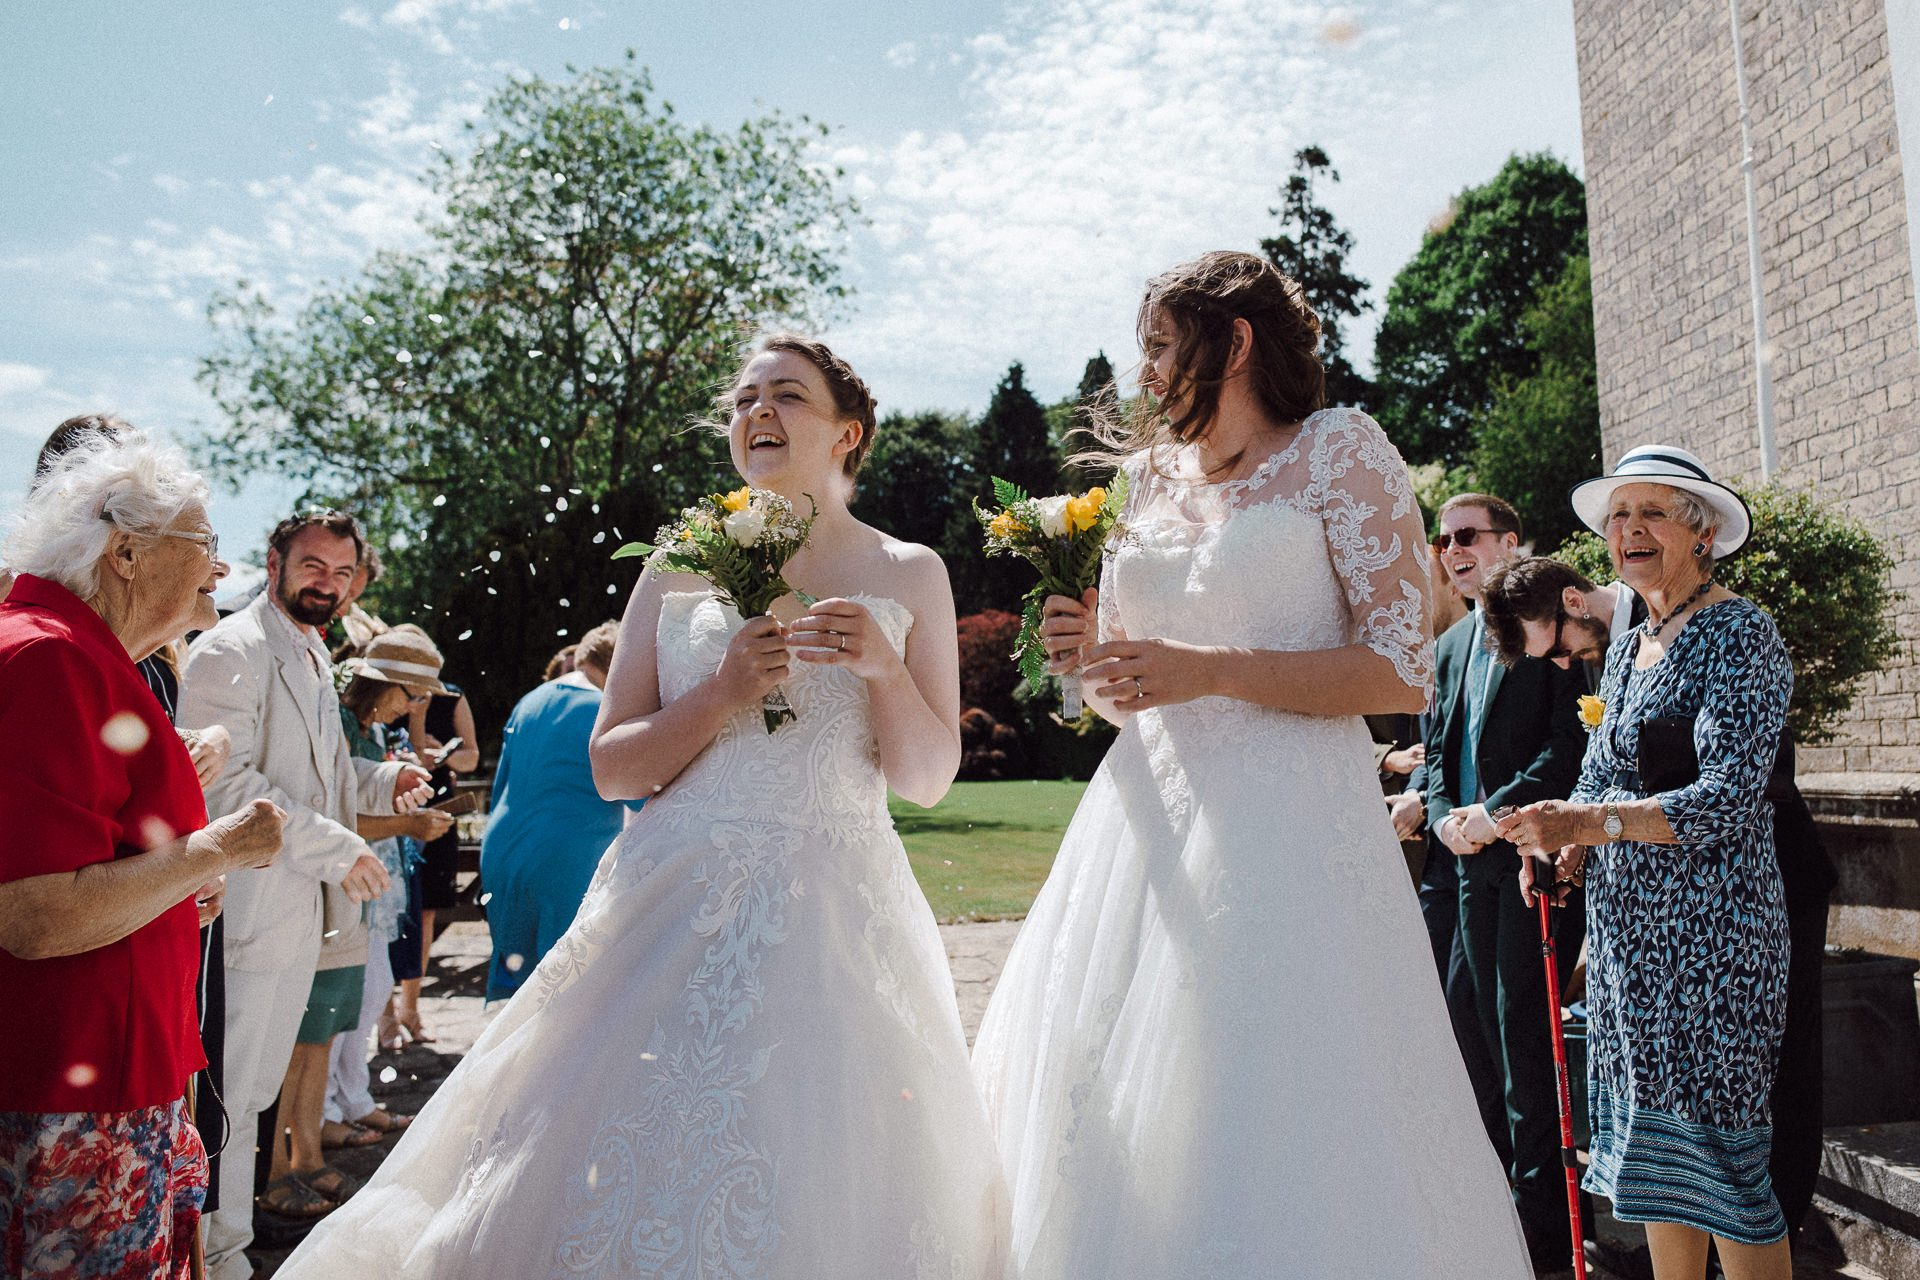 0056-DEVON-SOMERSET-WEDDING-PHOTOGRAPHER-0271-BEST-OF-2019-LOUISE-MAY-DEVON-SOMERSET-WEDDING-PHOTOGRAPHY-LM2_7258